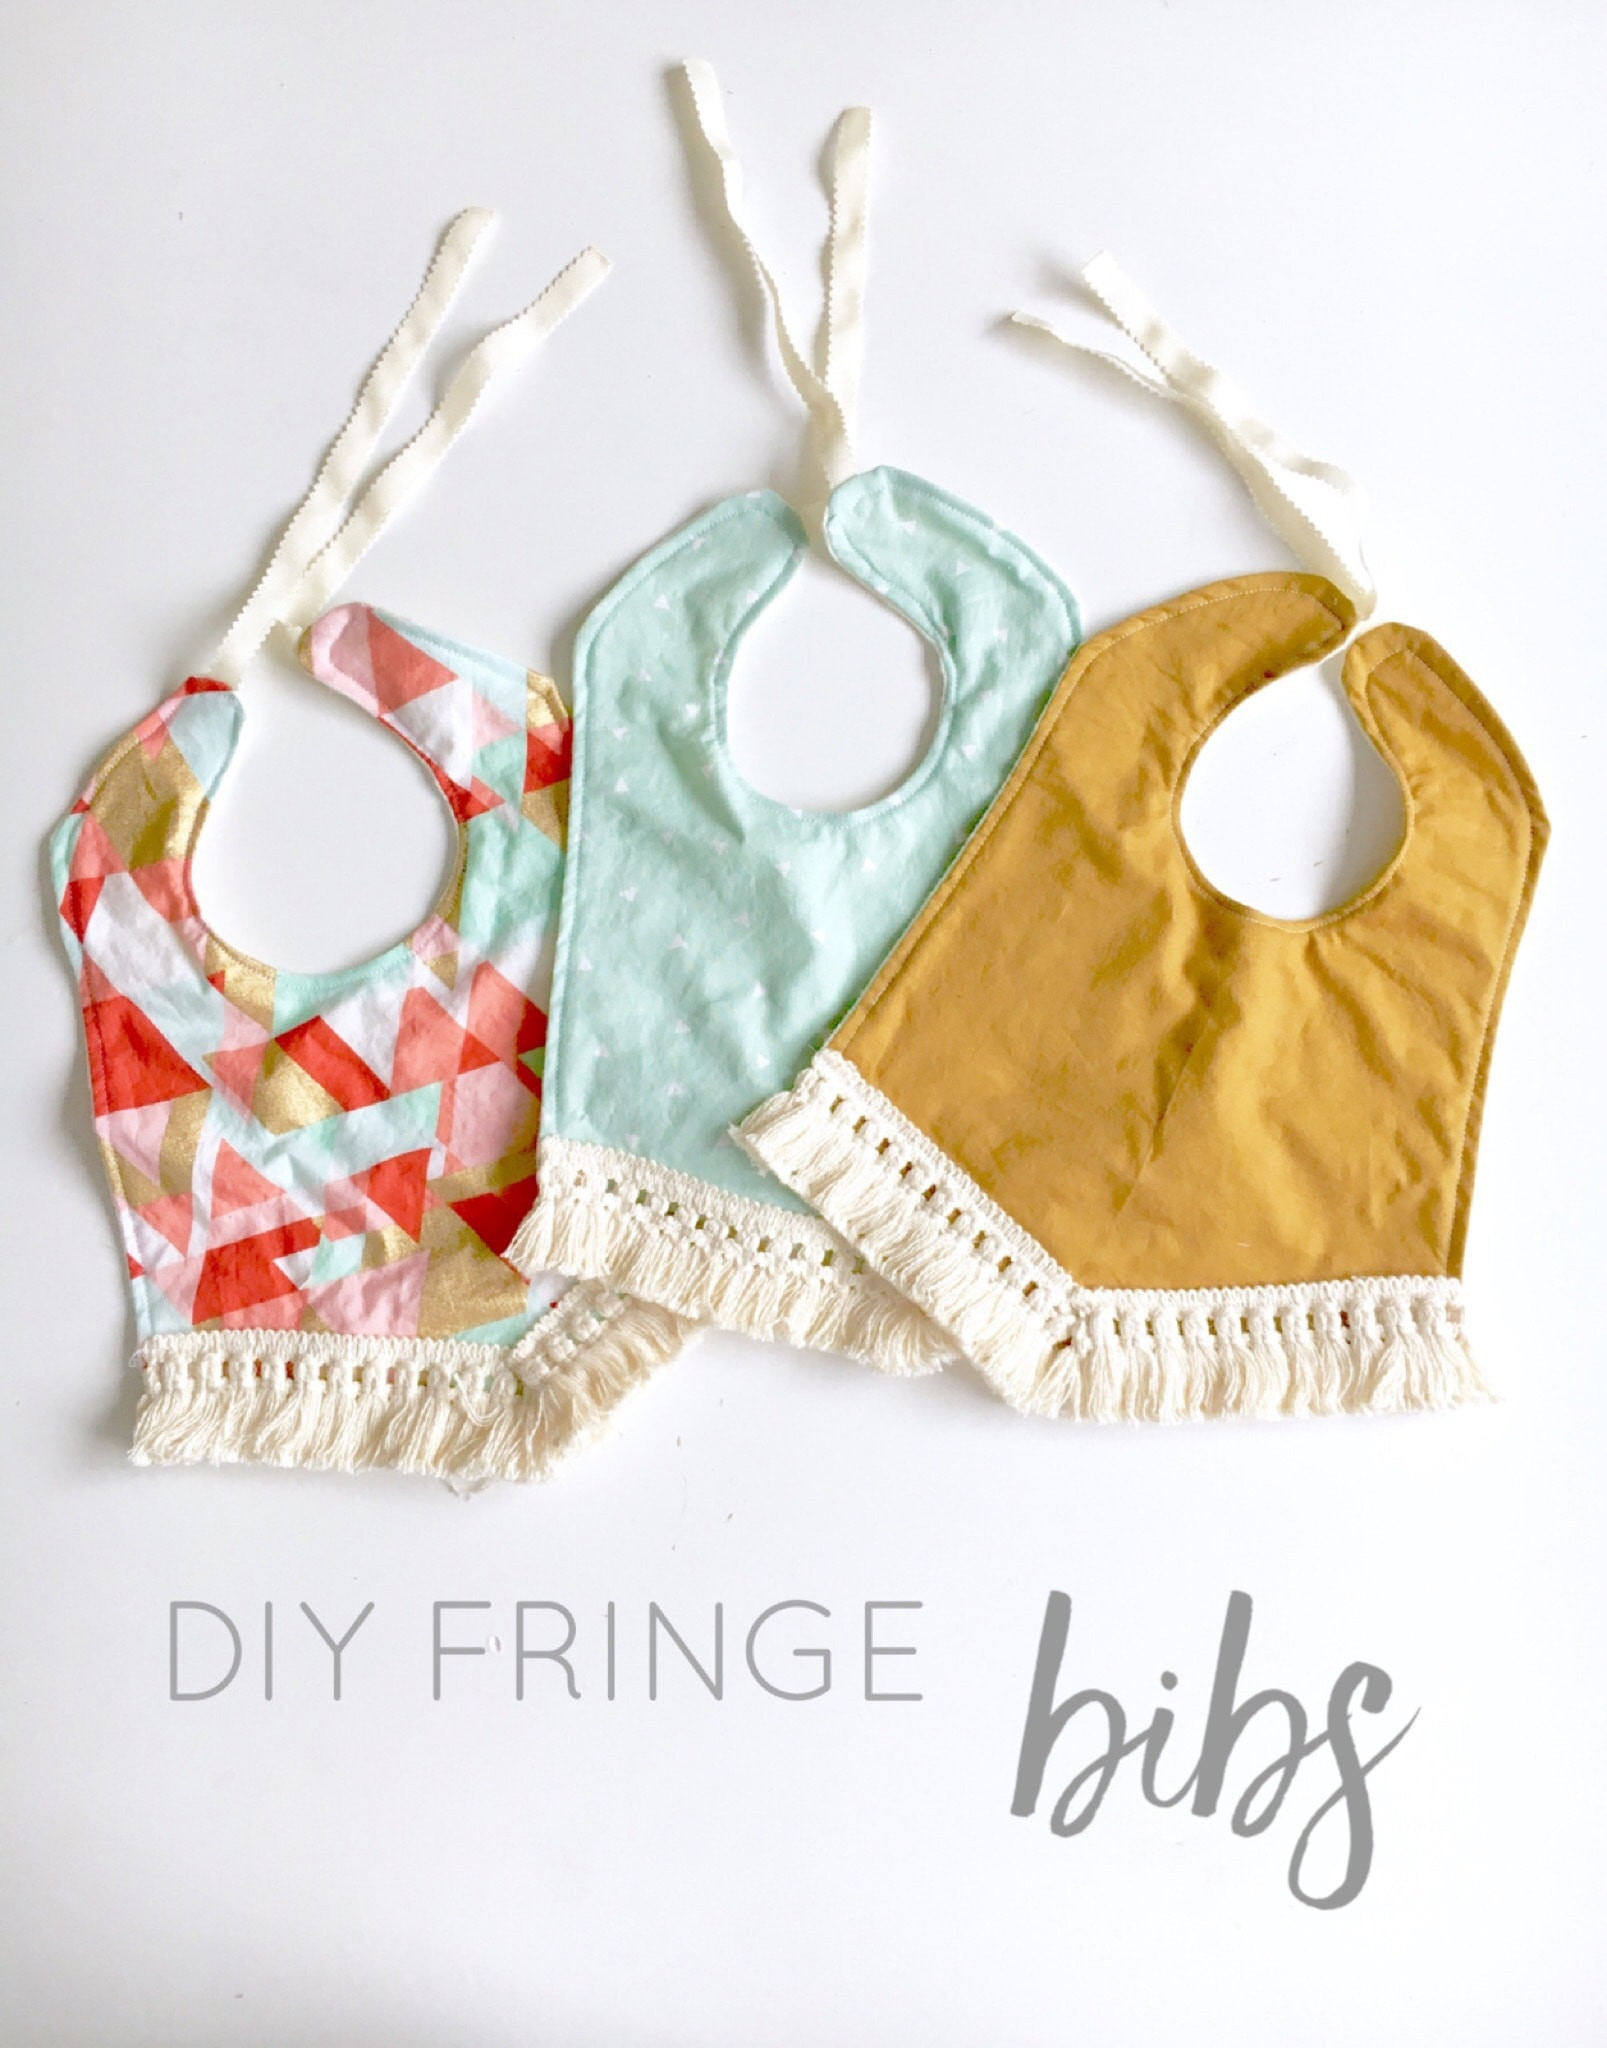 Best ideas about DIY Baby Bibs . Save or Pin DIY Fringe Bibs Life on Waller Now.